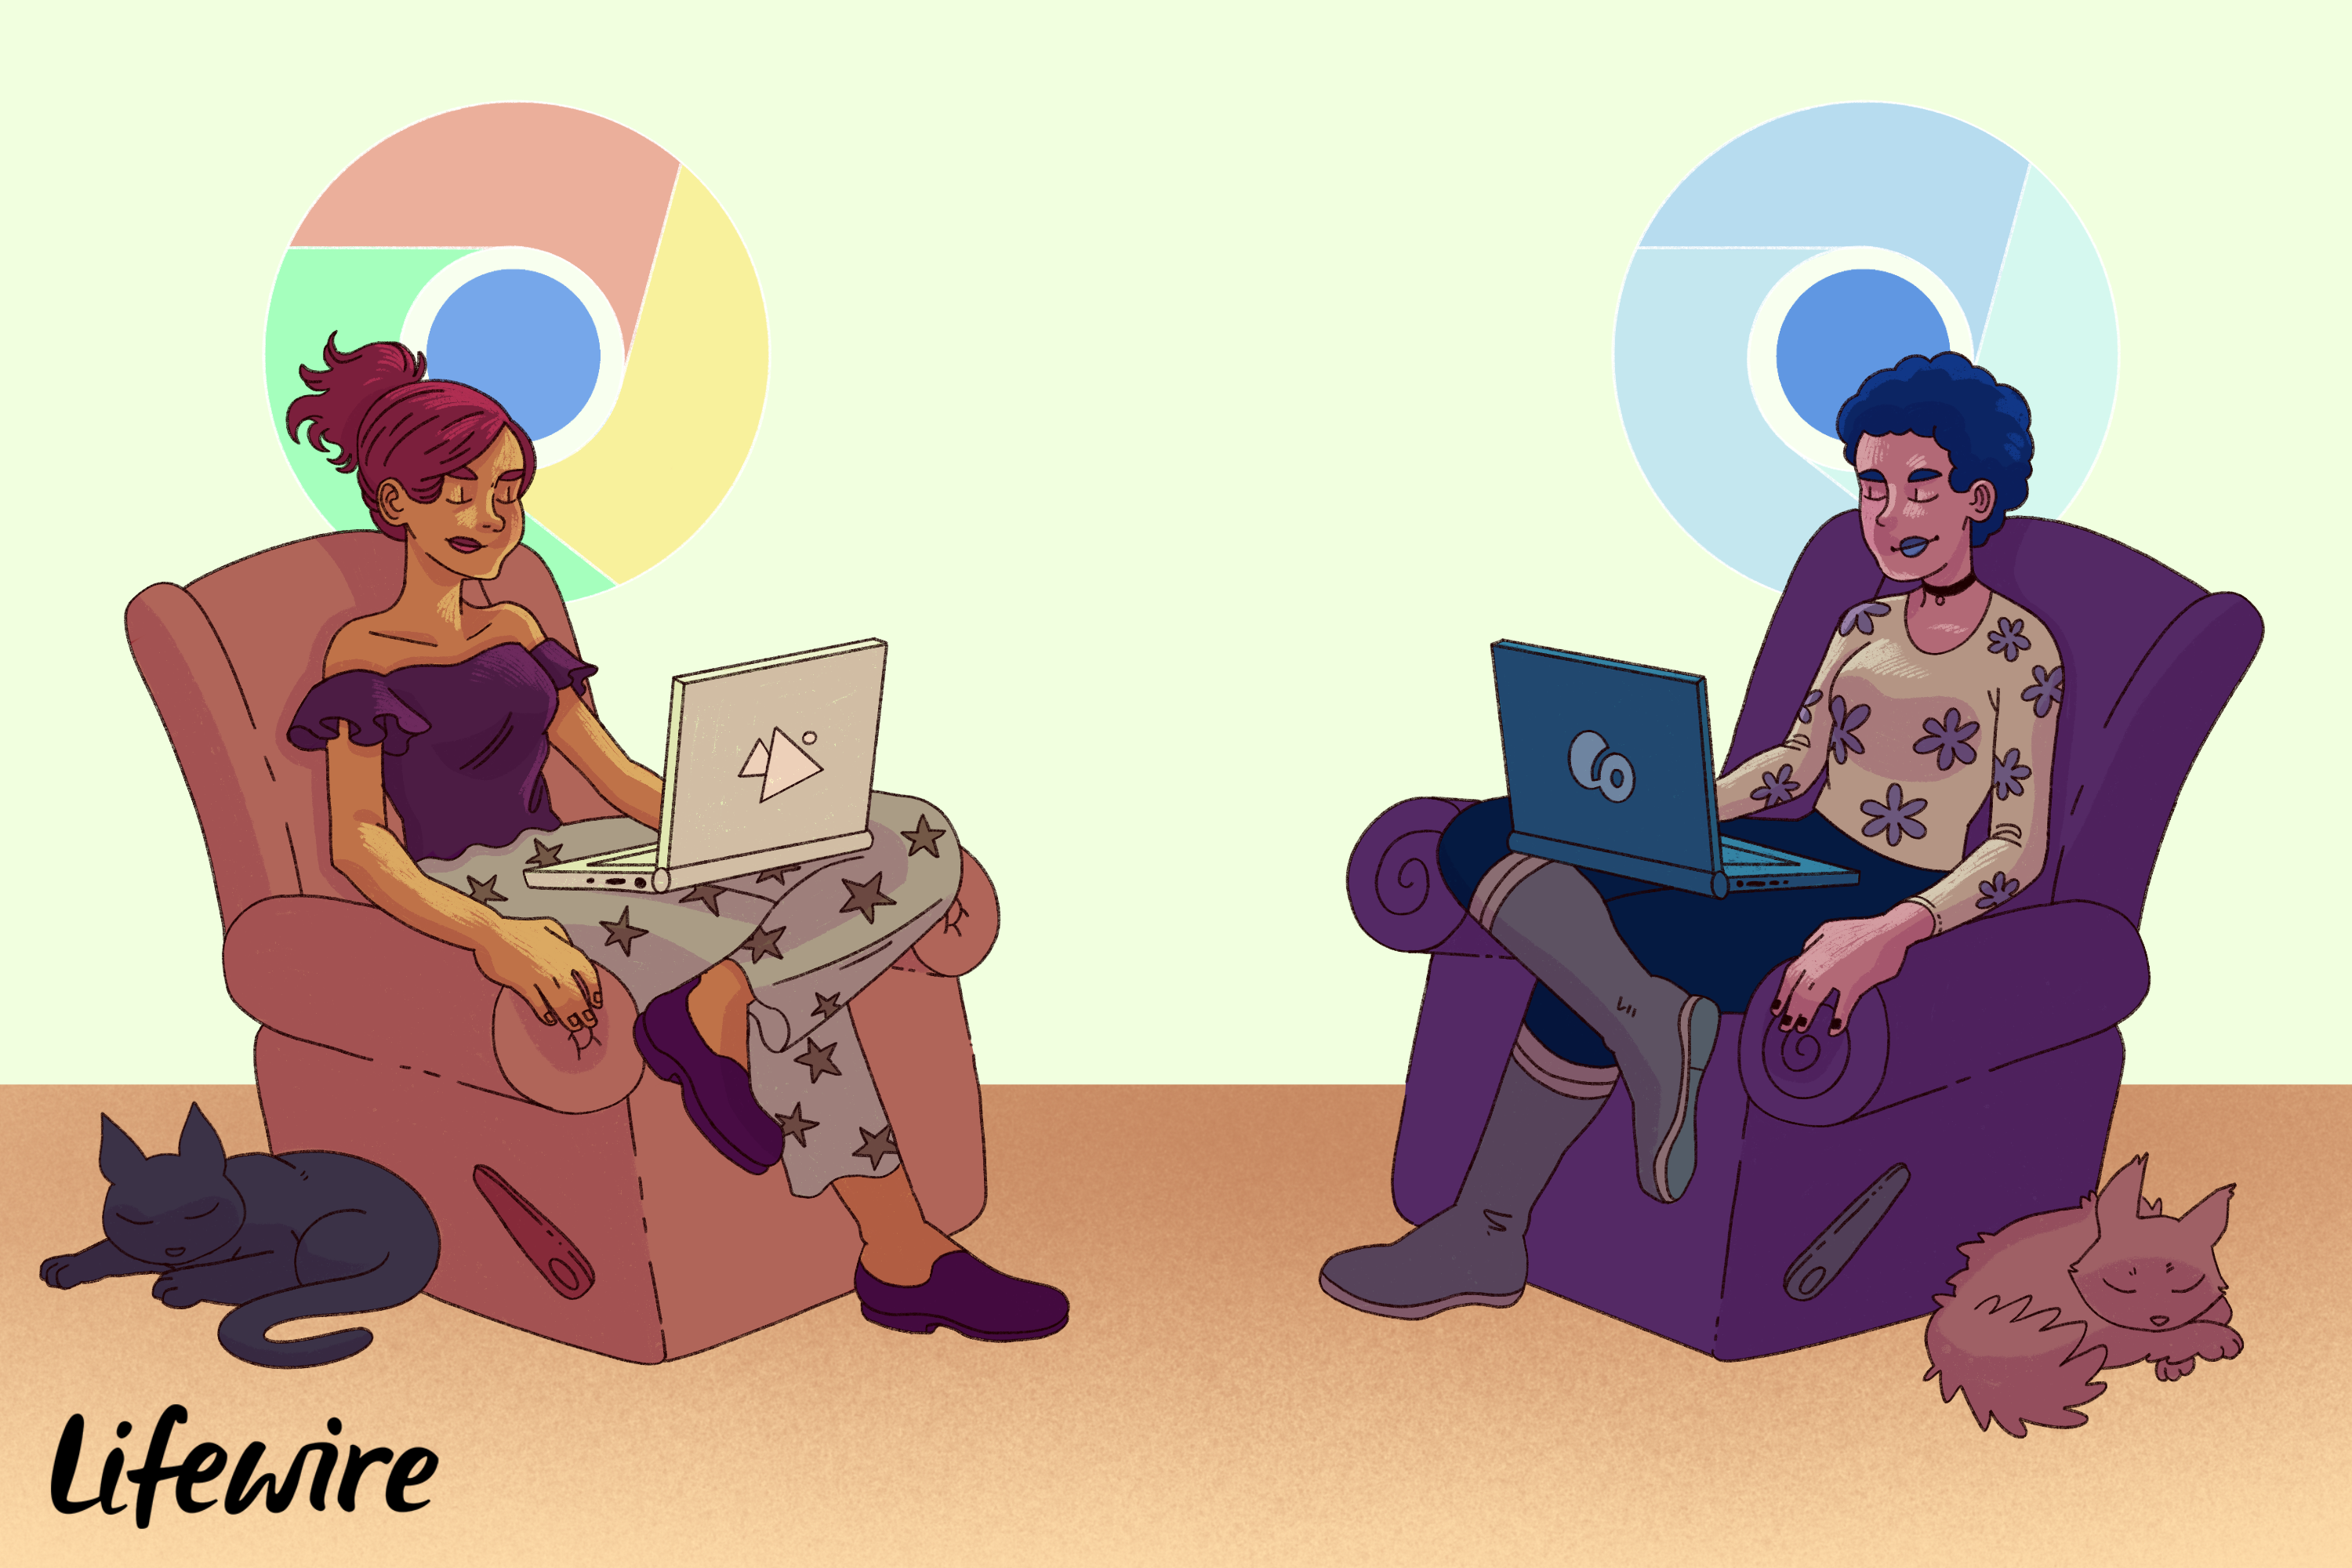 Two people using either Chrome or Chromium browsers